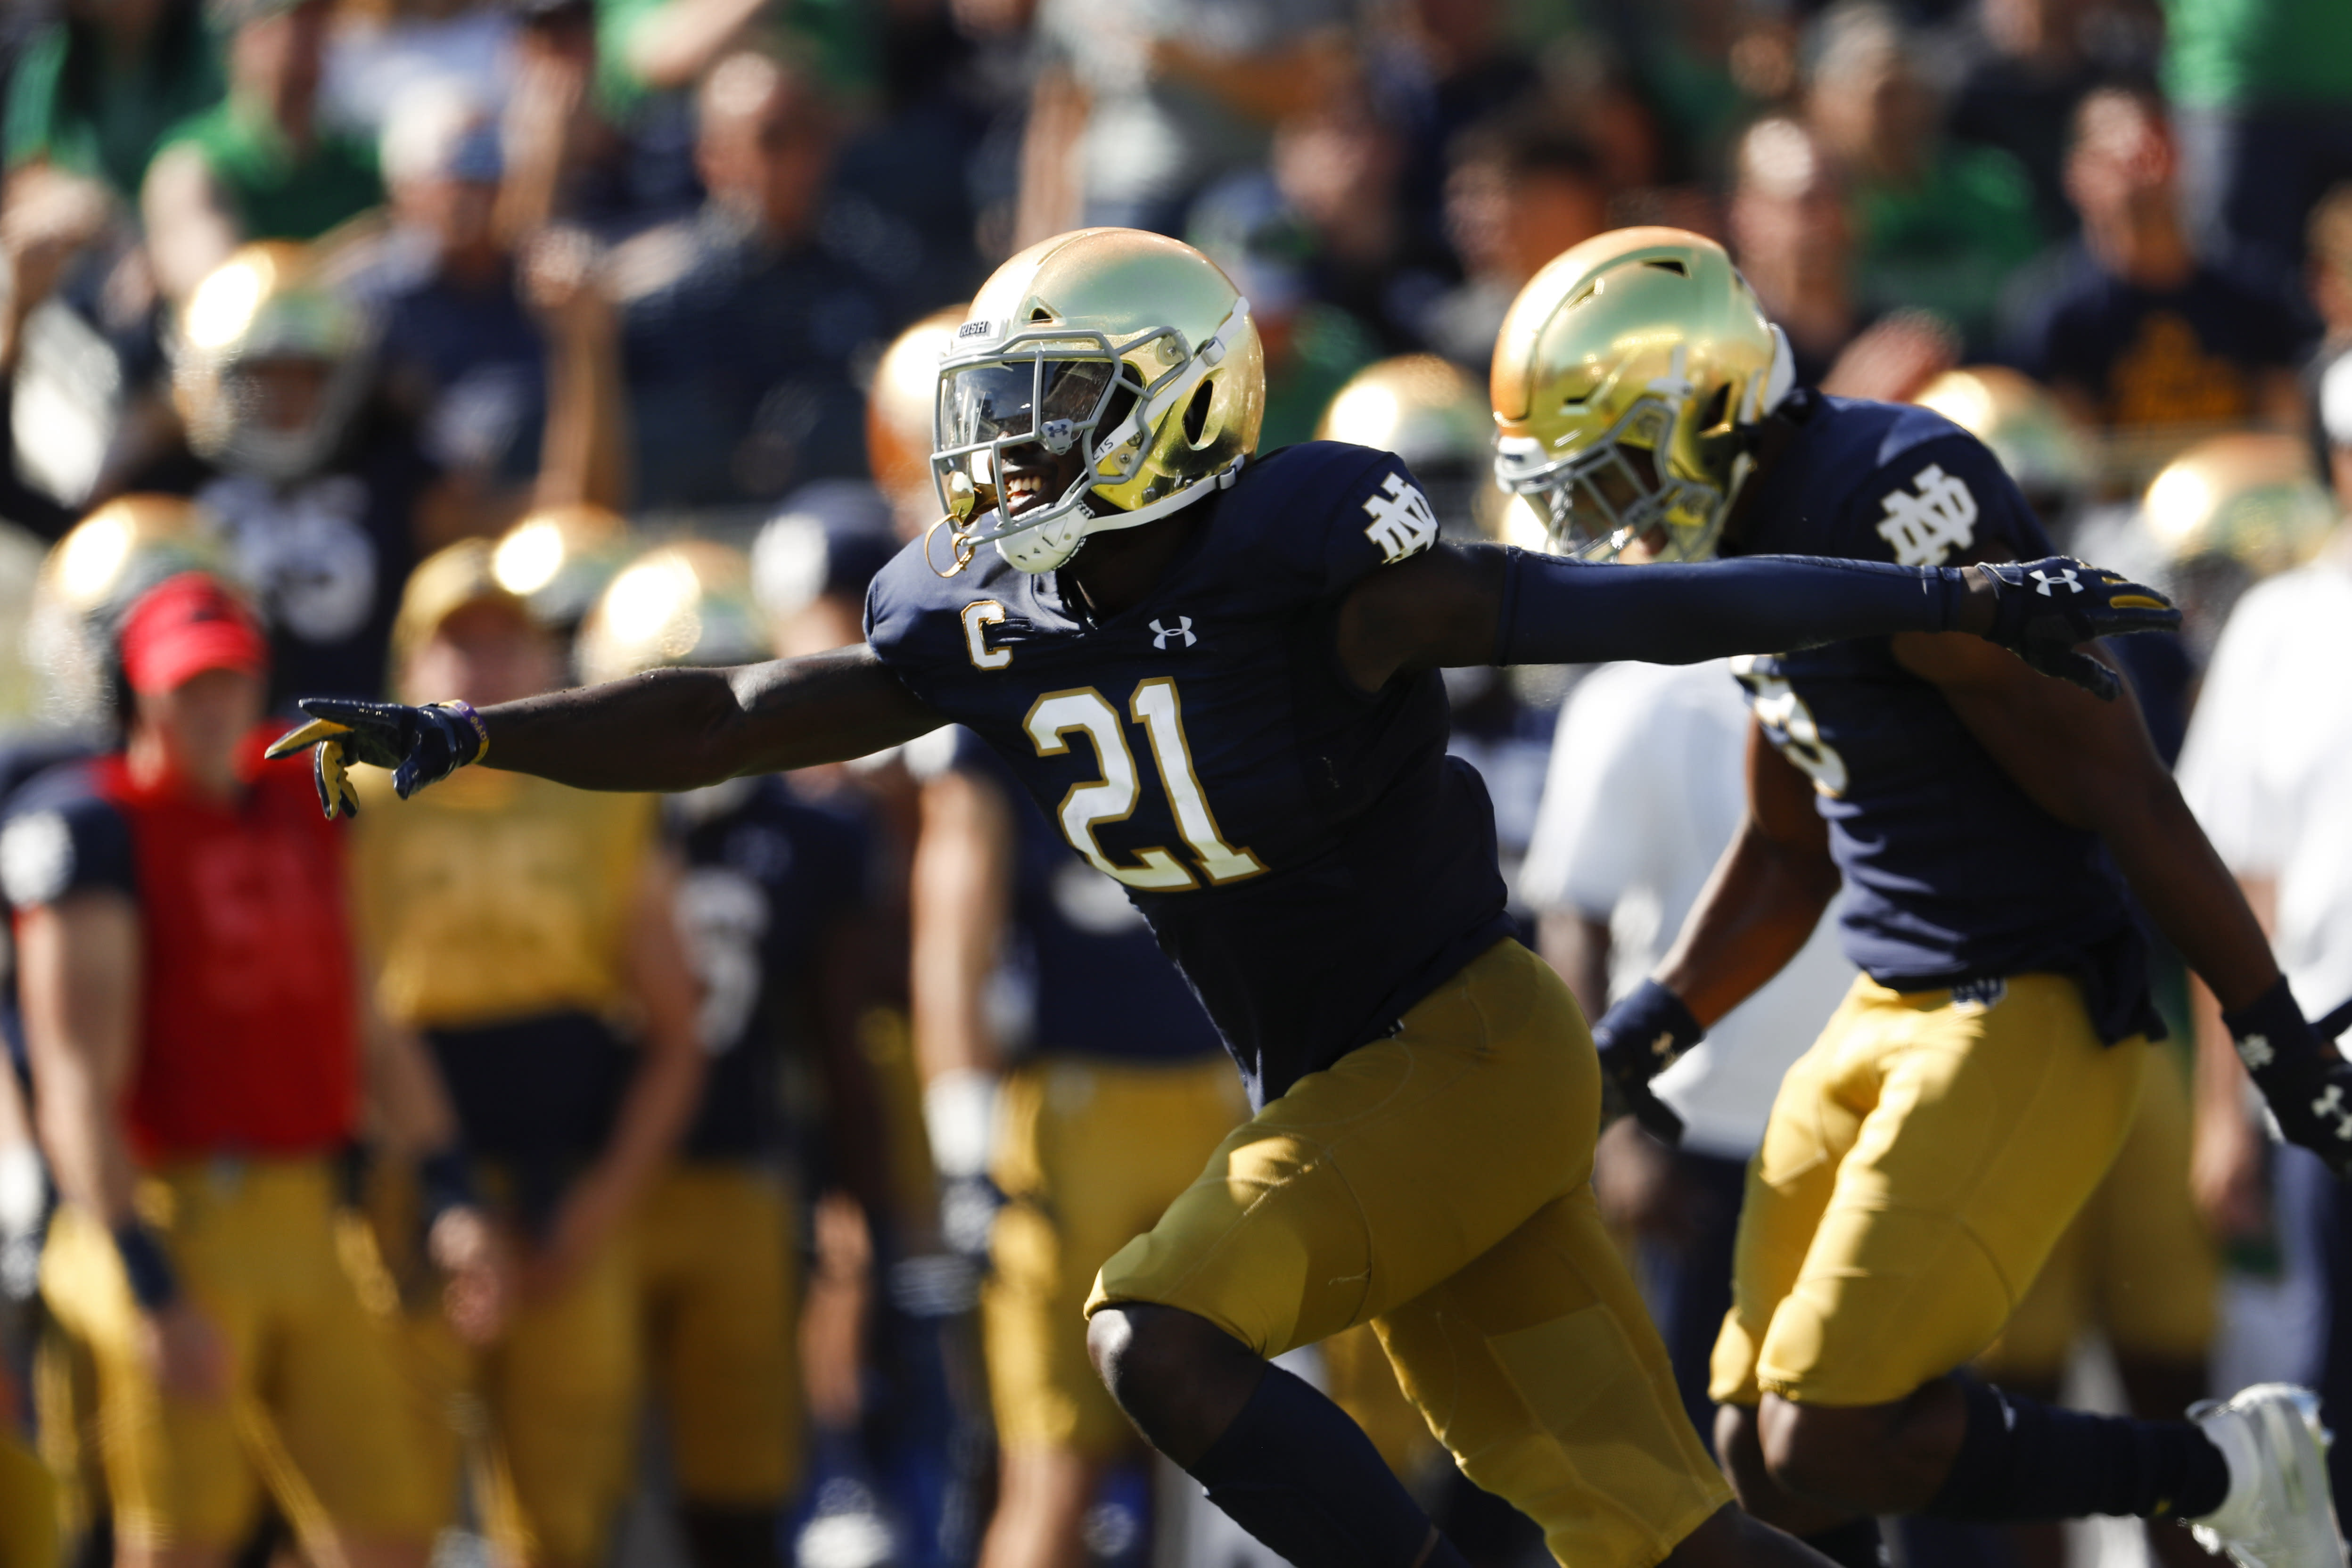 Book throws for 5 TDs as No. 7 Notre Dame routs New Mexico